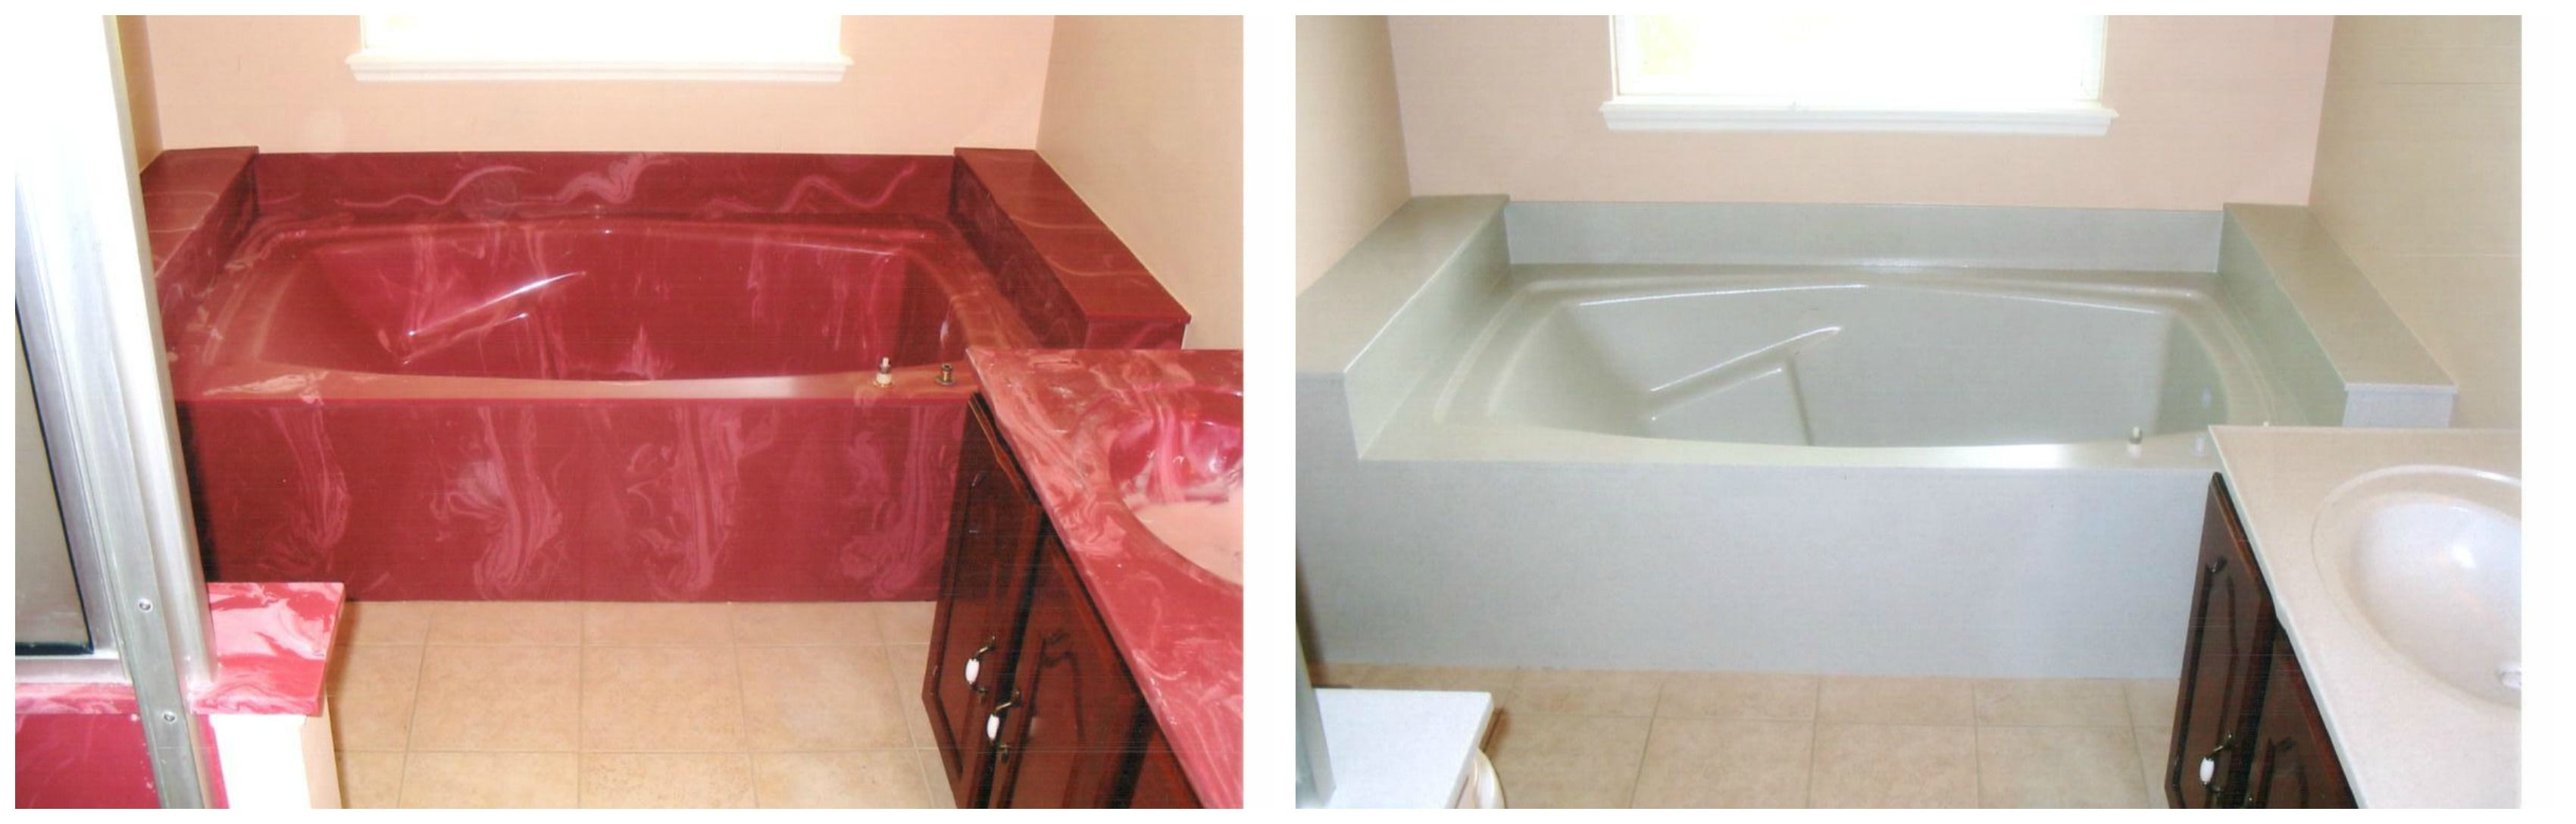 Cultured Marble Bathroom Marble Tub Kitchen And Bath Cultured Marble